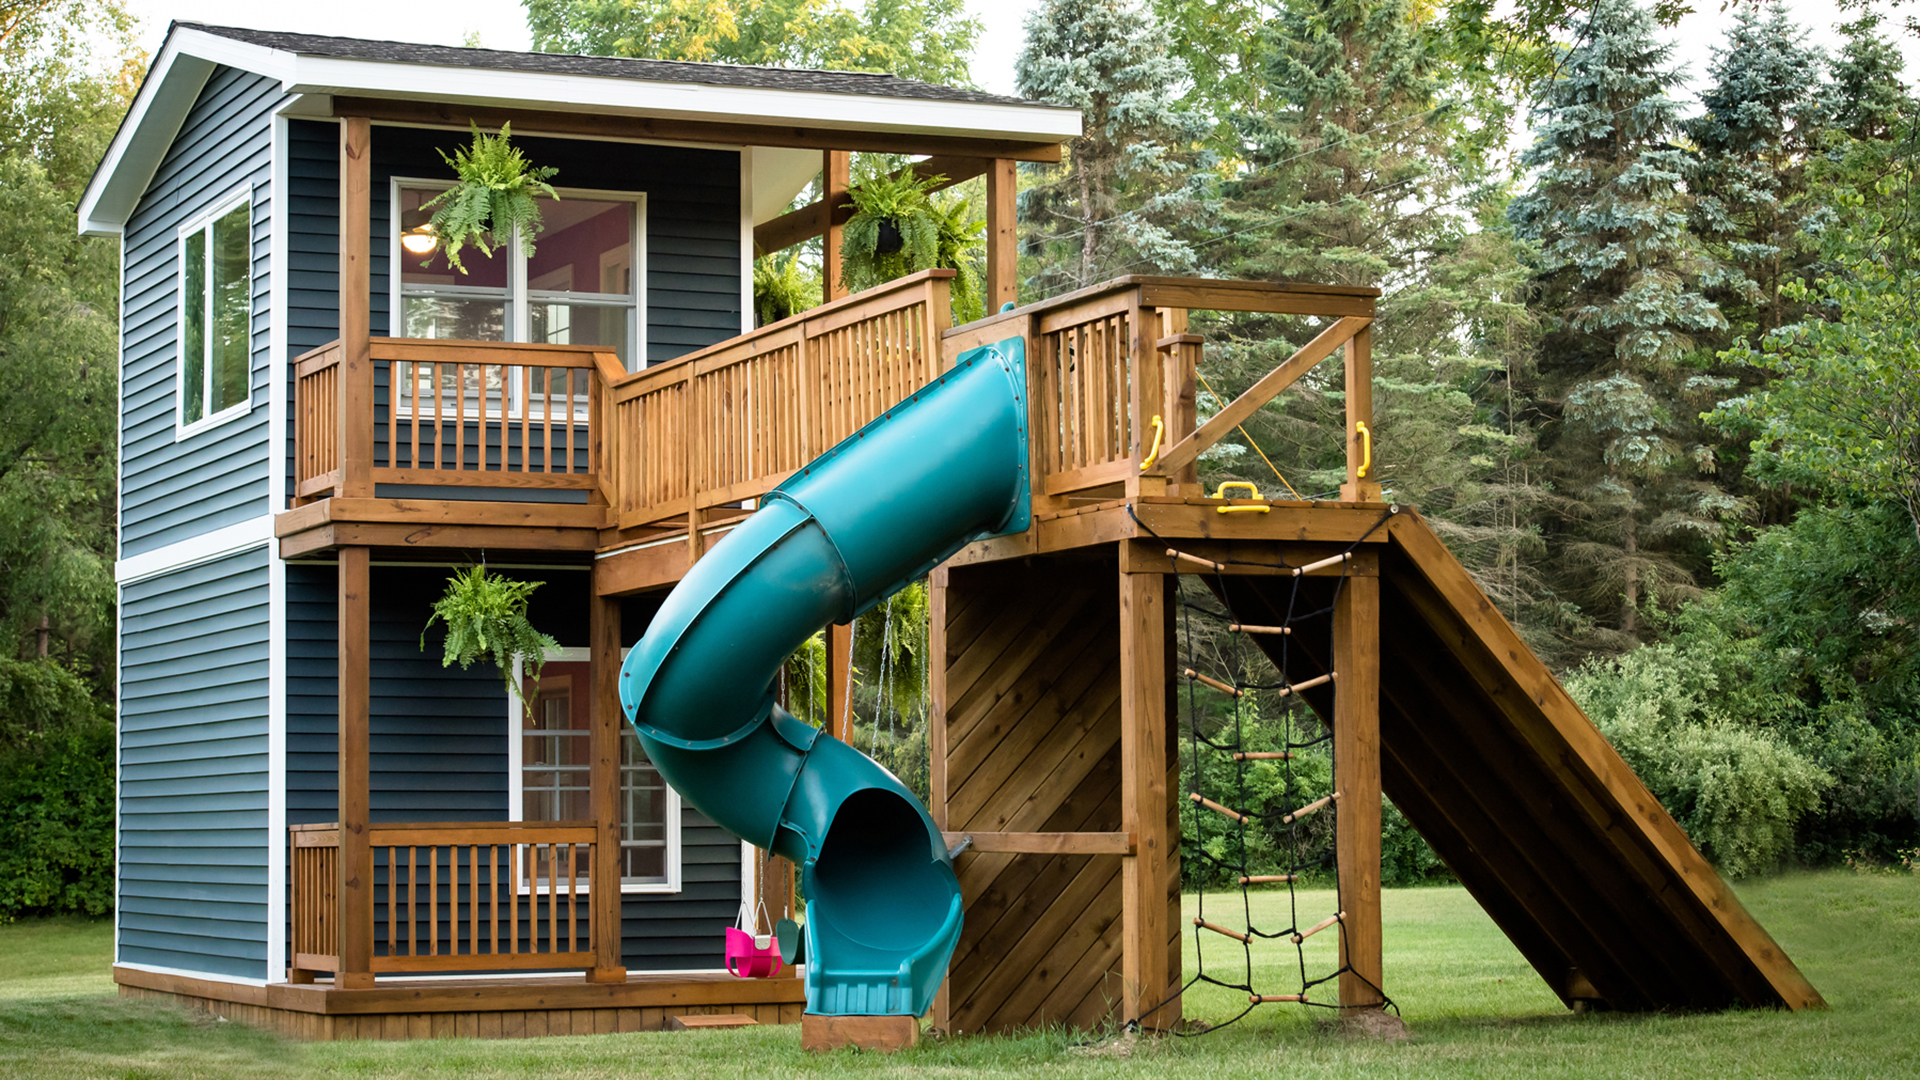 We would totally live in this playhouse a dad built for his daughters - TODAY.com